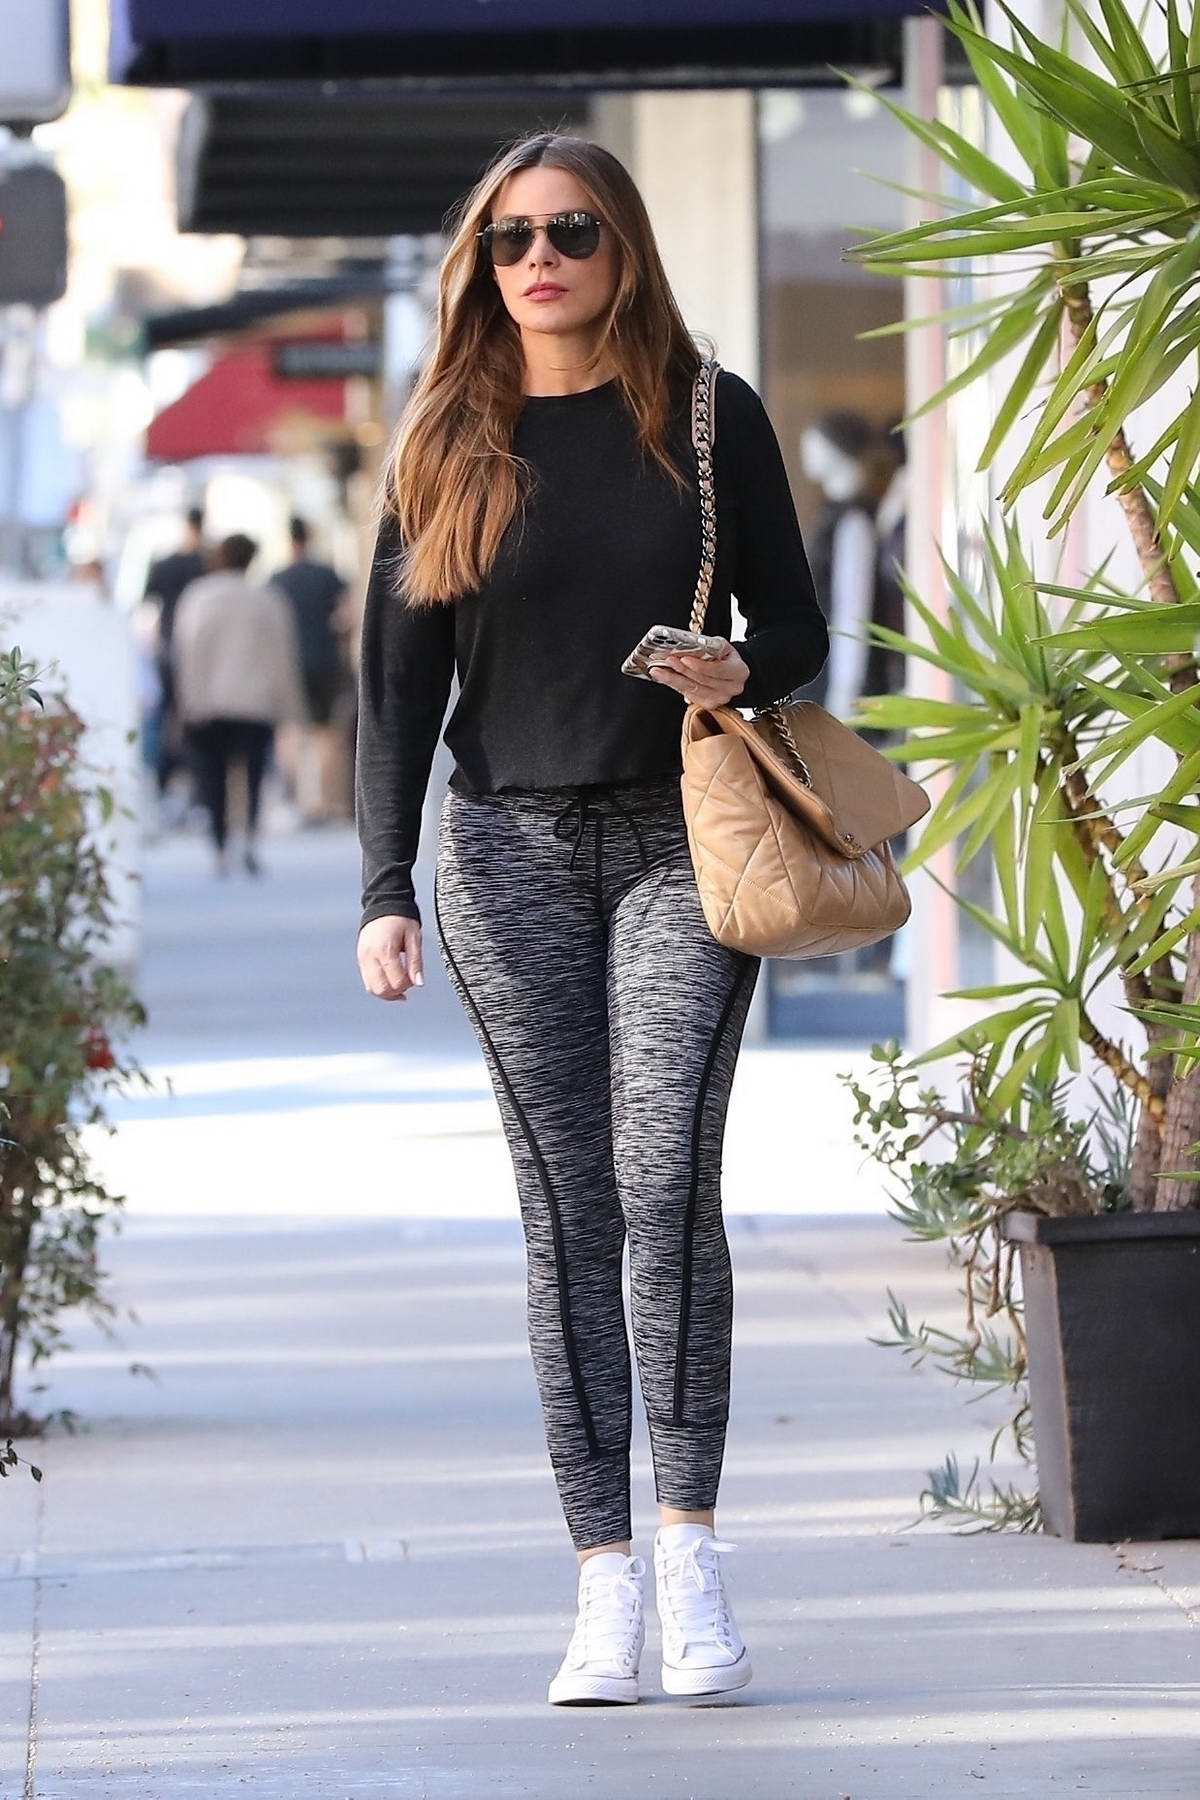 Sofia Vergara looks great in black top and grey leggings while running a few errands in Beverly Hills, California